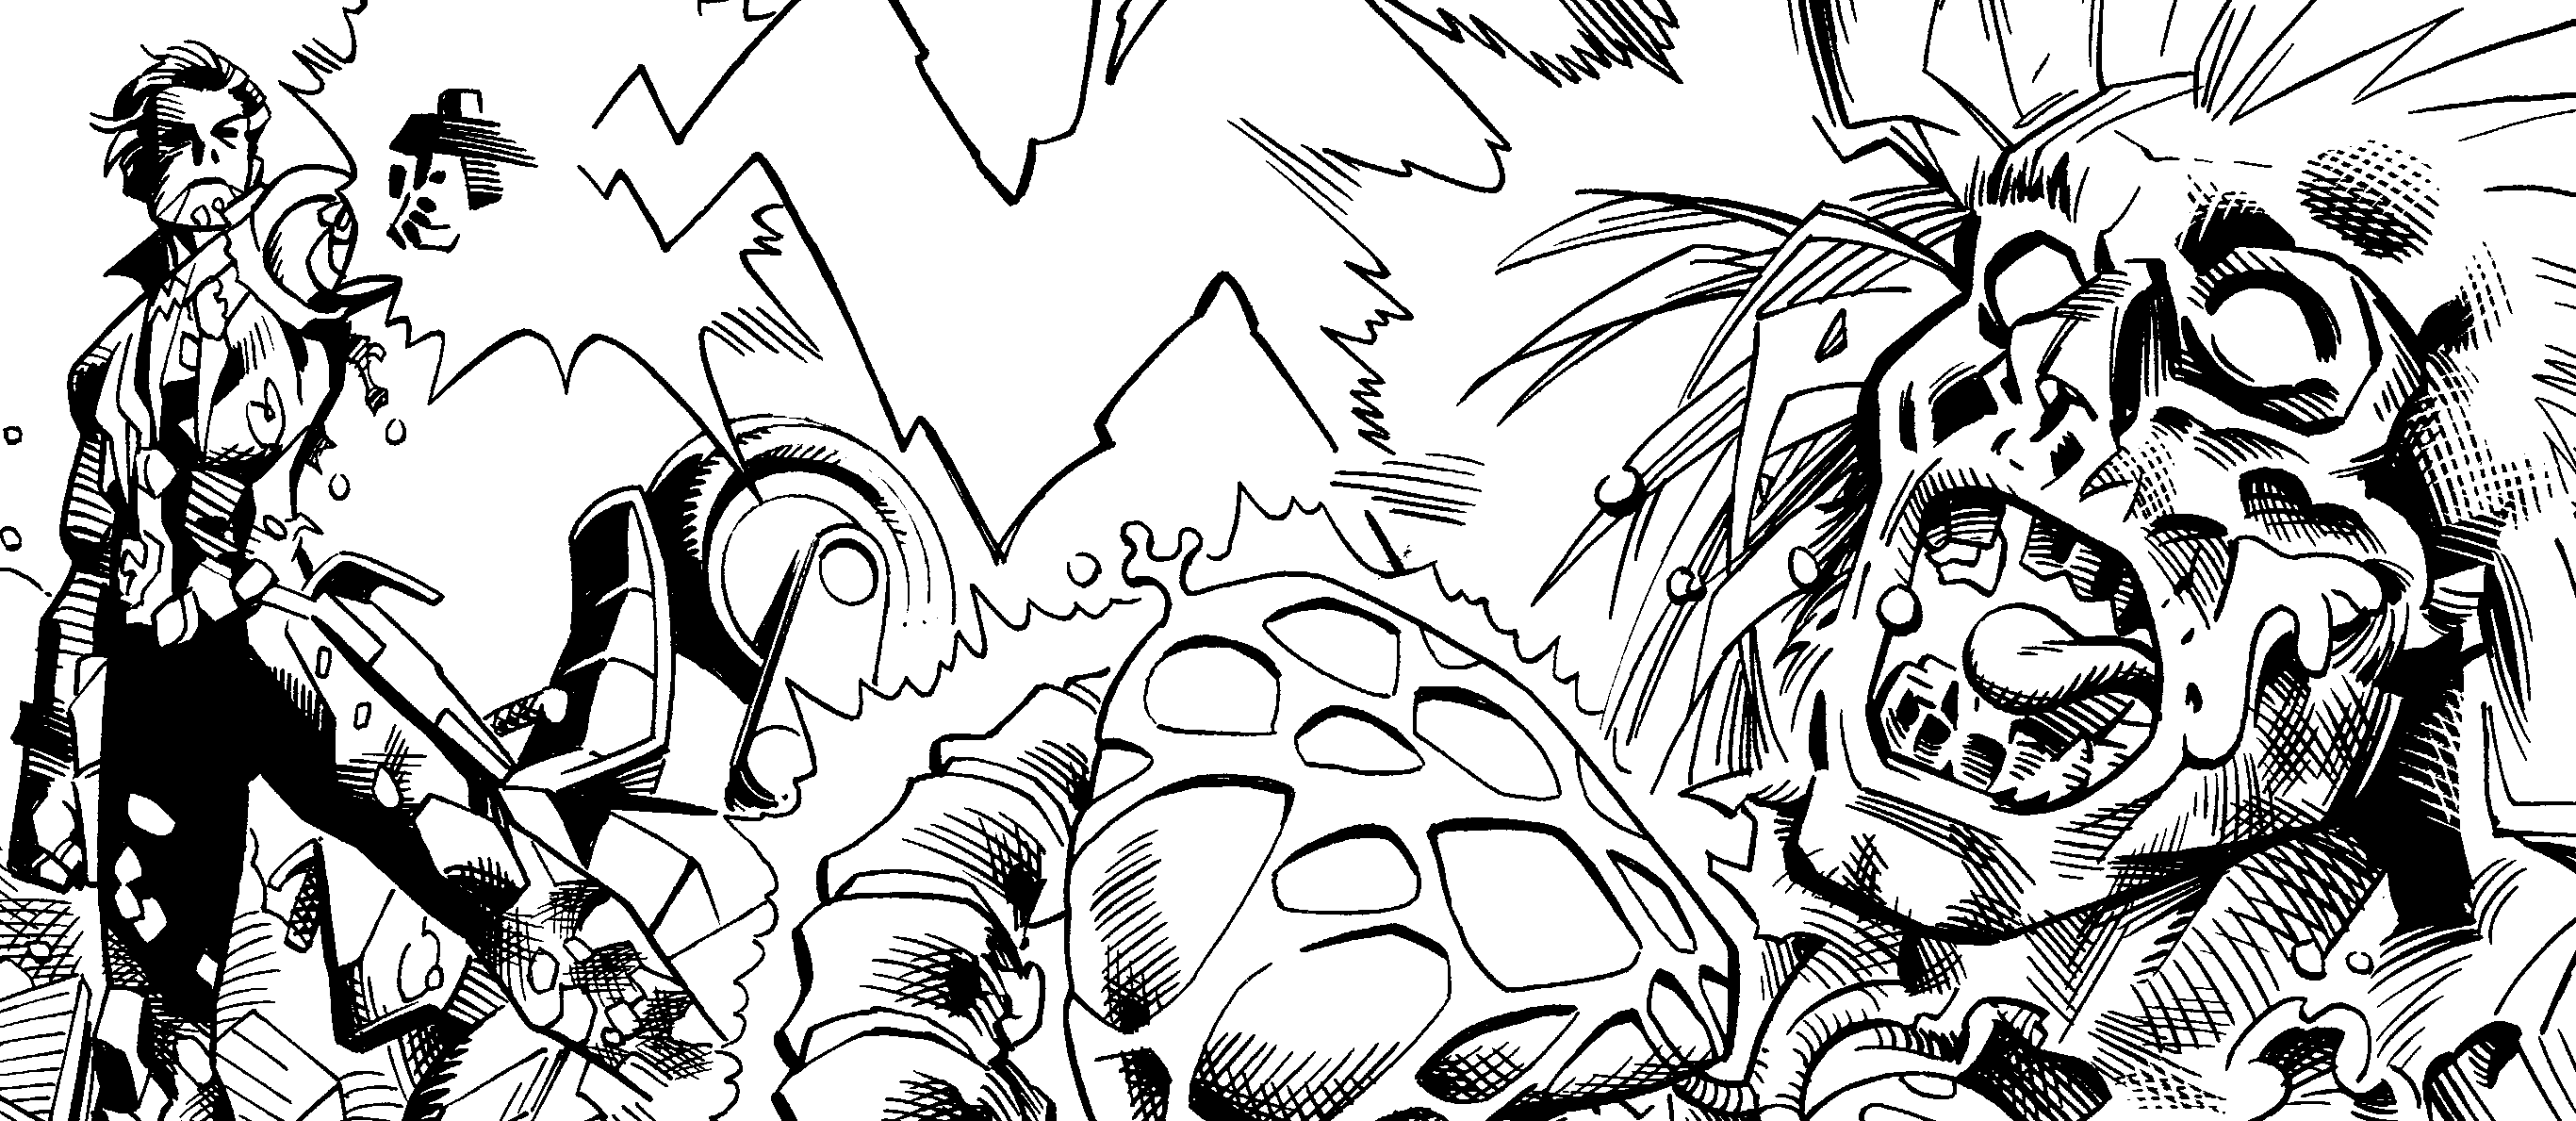 Inking Samples over Reilly Brown's Lobo Pencils by SteveBird